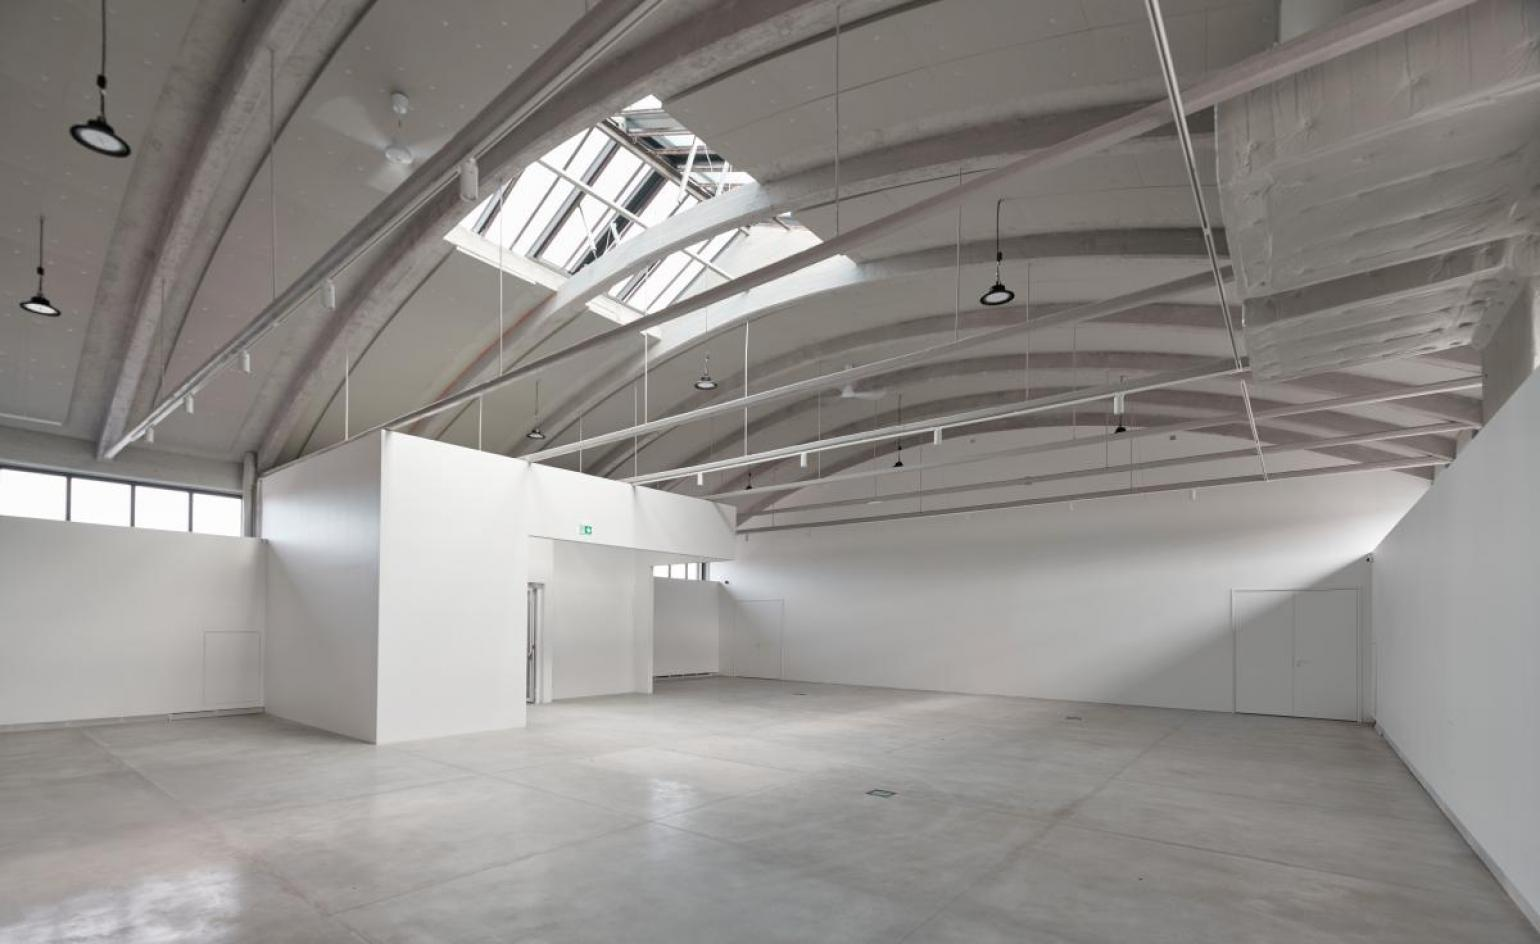 The Kai Art Center opens in a renovated submarine factory in Tallinn